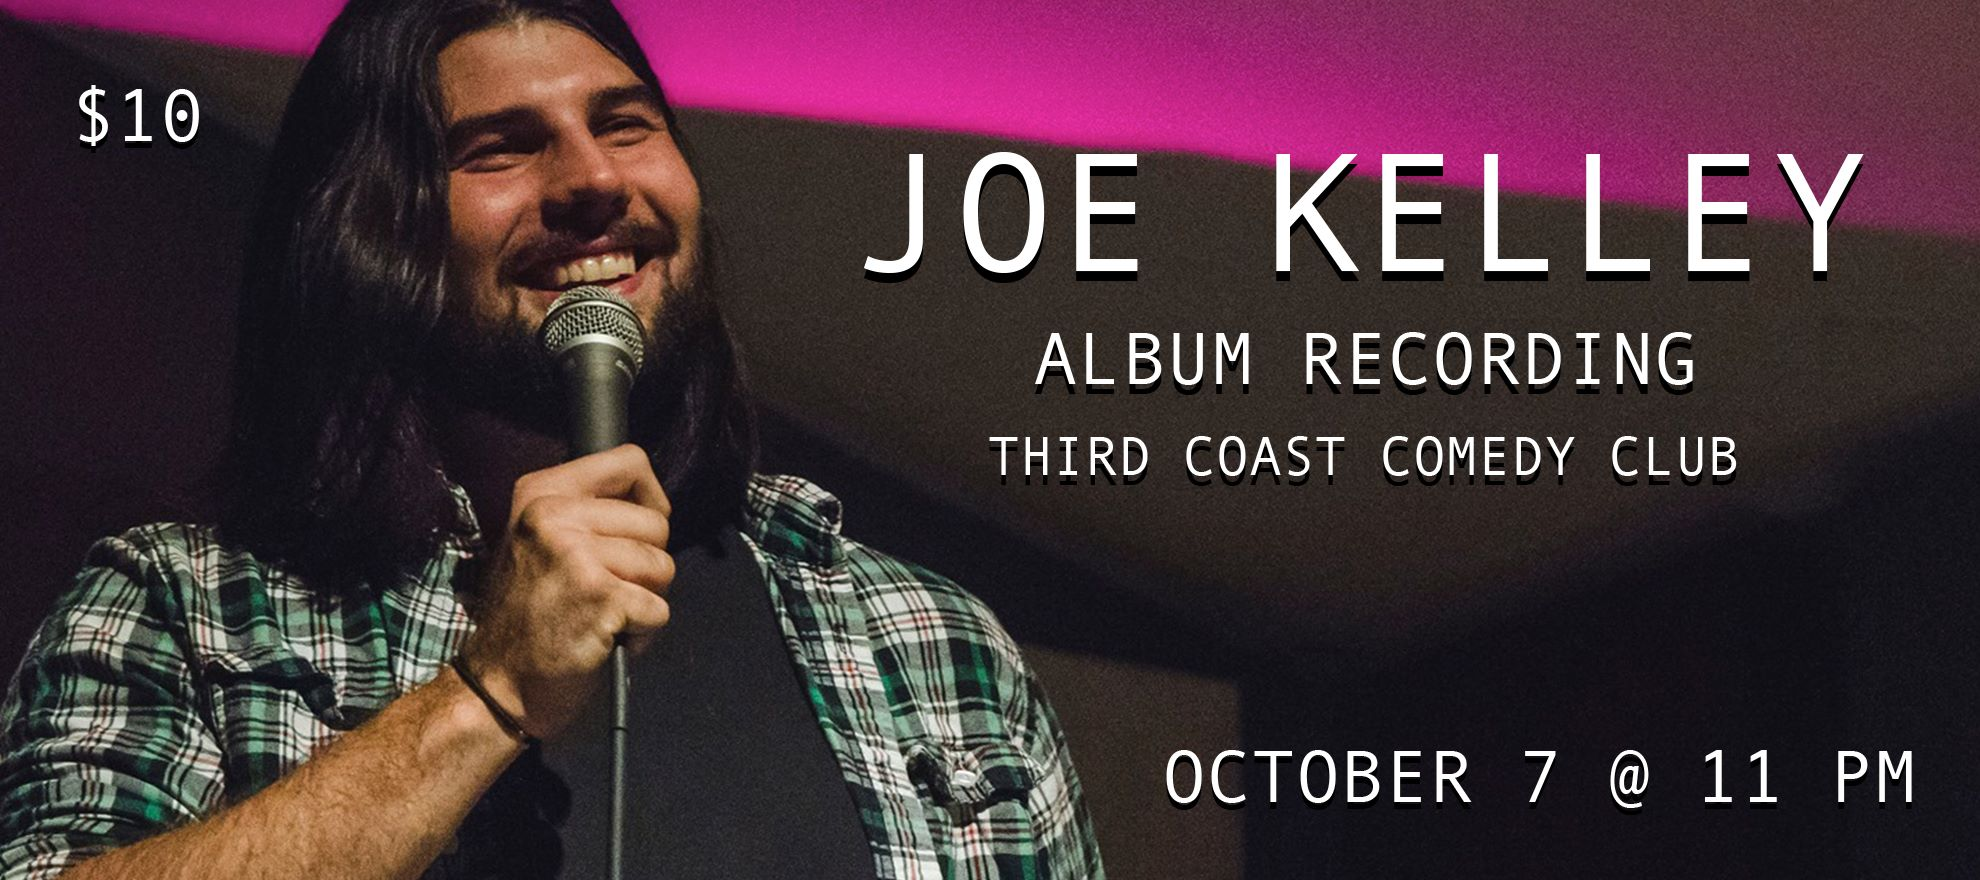 Joe Kelley album recording 10/7/2017